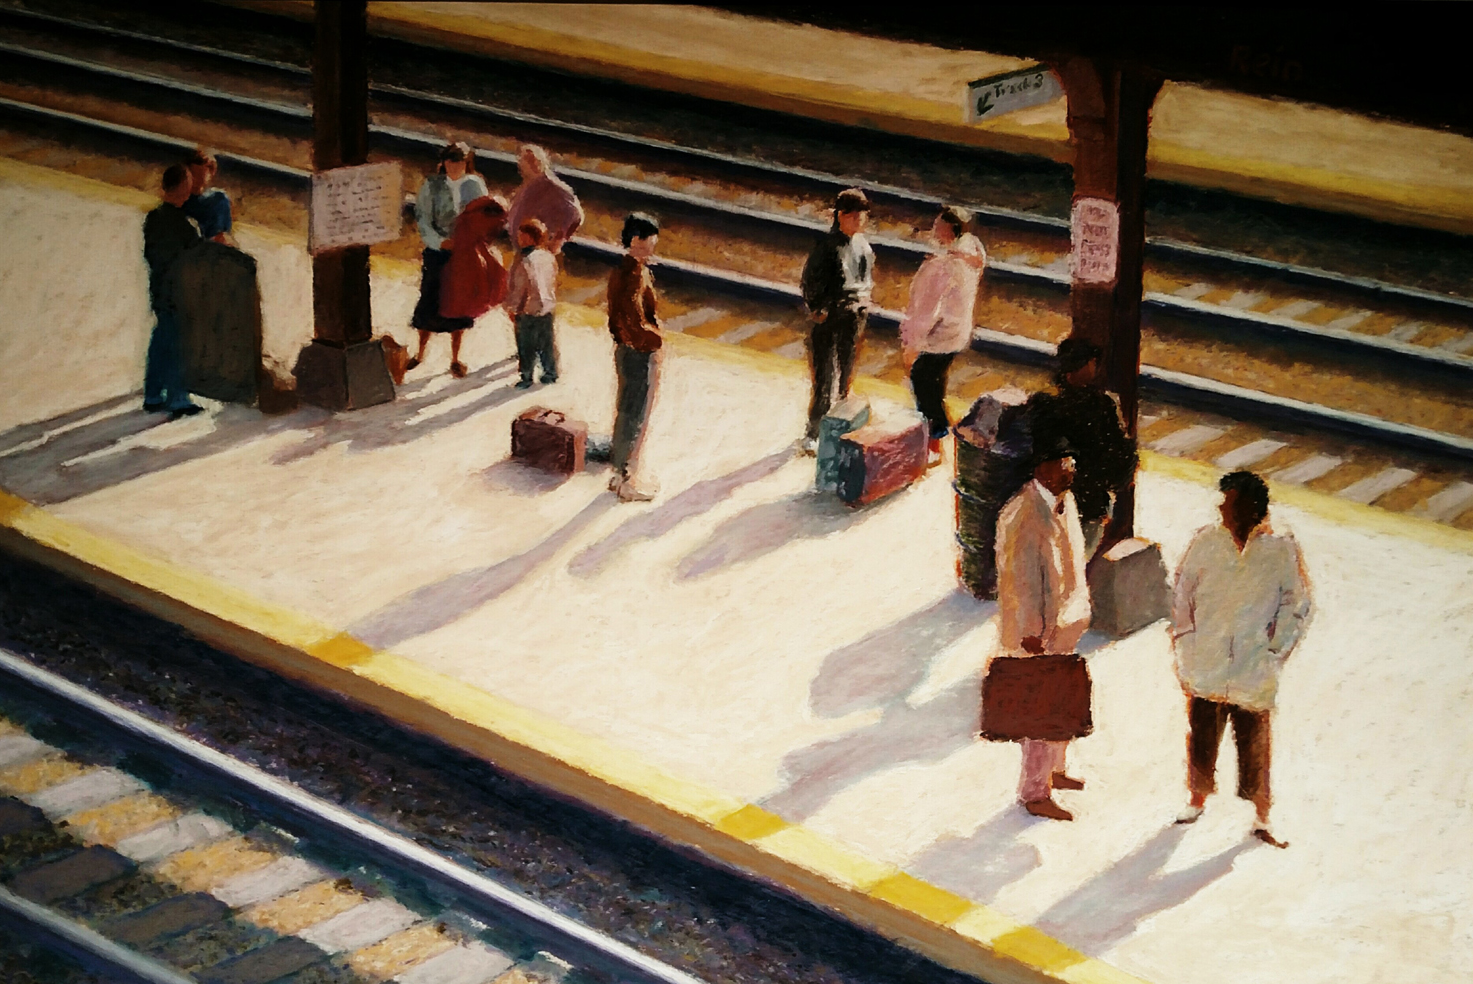 Poughkeepsie Train Station,  Sam Rein (1925-2007), will be offered at Silent Auction at the Opening Reception (courtesy Barrett Art Center), as well as an exhibition poster.